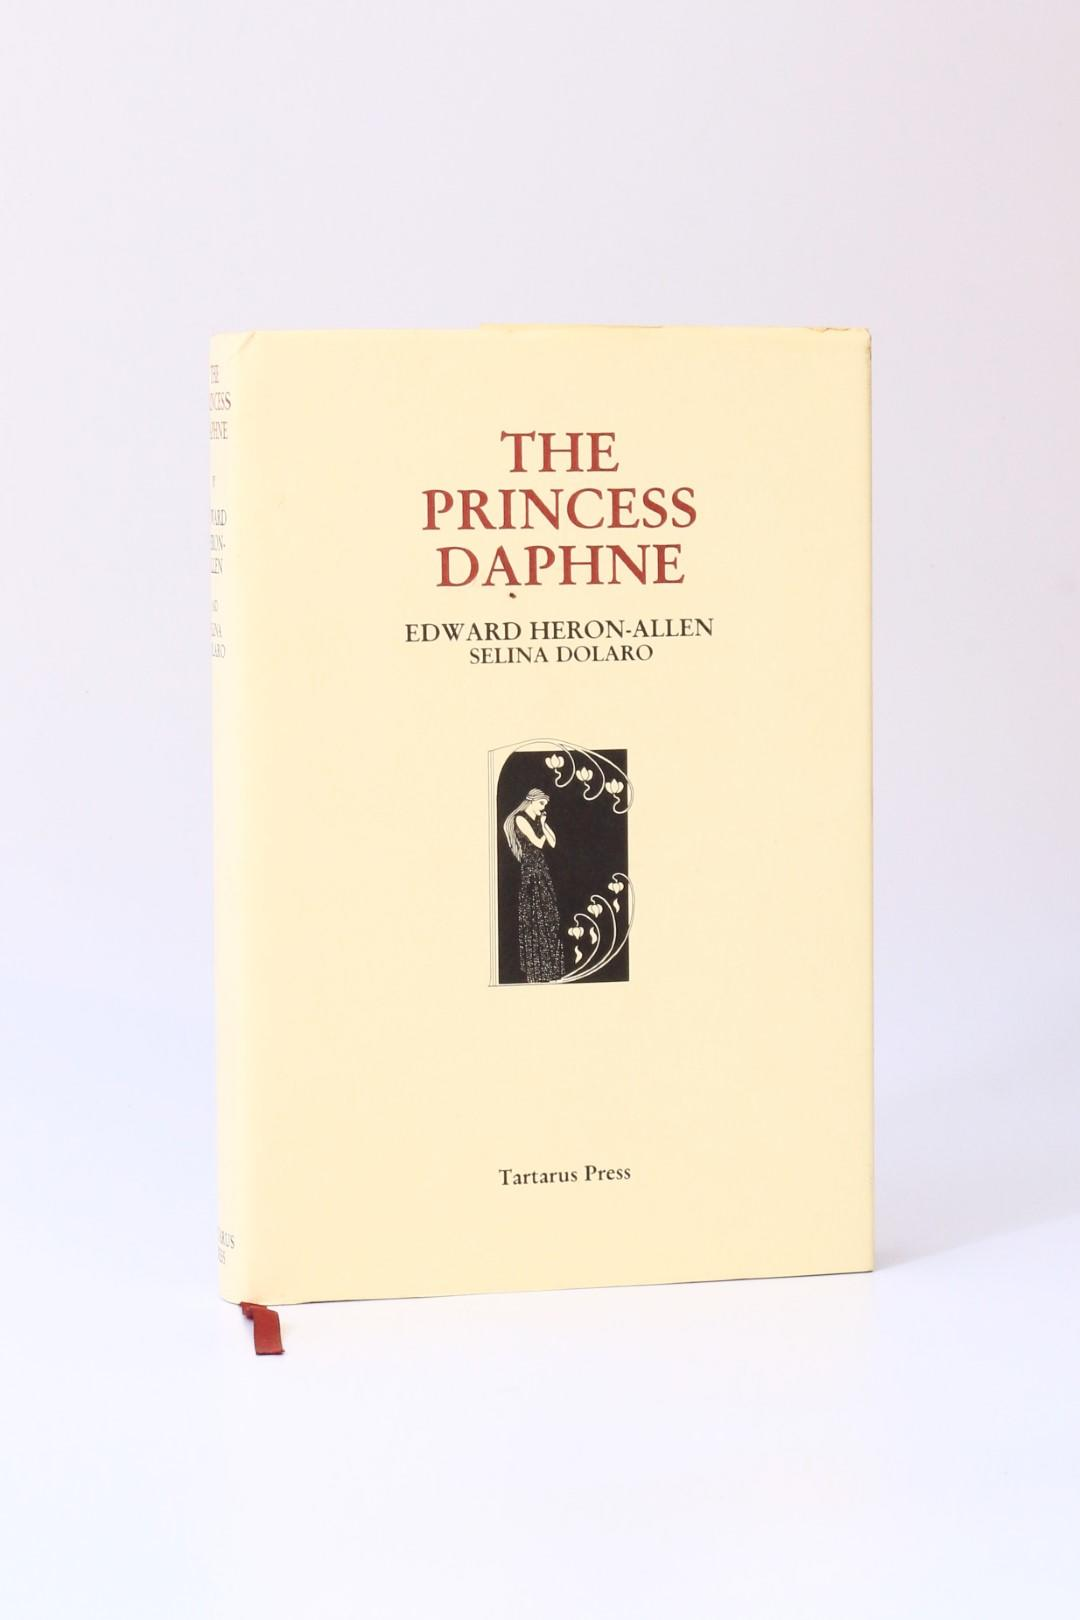 Edward Heron-Allen & Selina Dolaro - The Princess Daphne - Tartarus Press, 2001, Limited Edition.